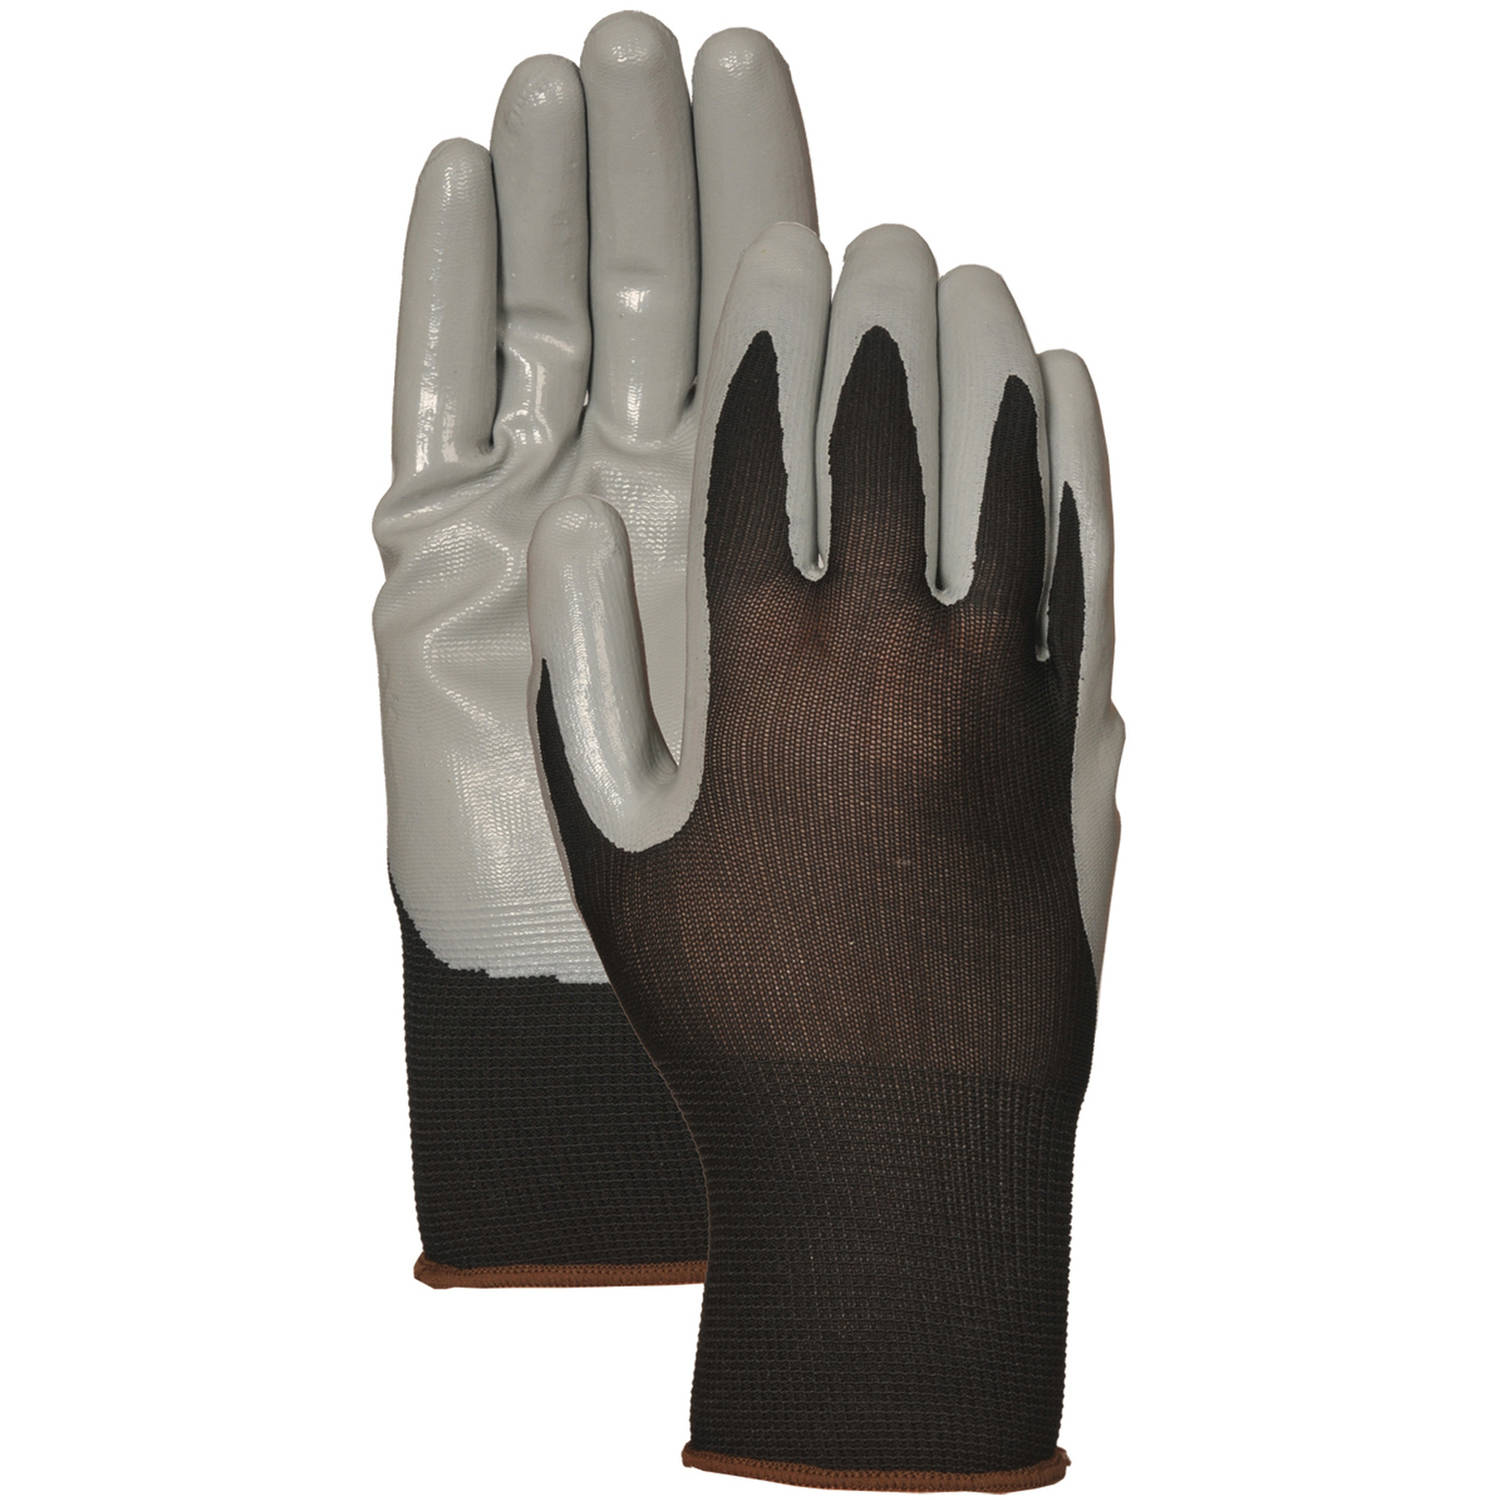 Bellingham Glove C3701S Small Gray Nitrile Palm Gloves